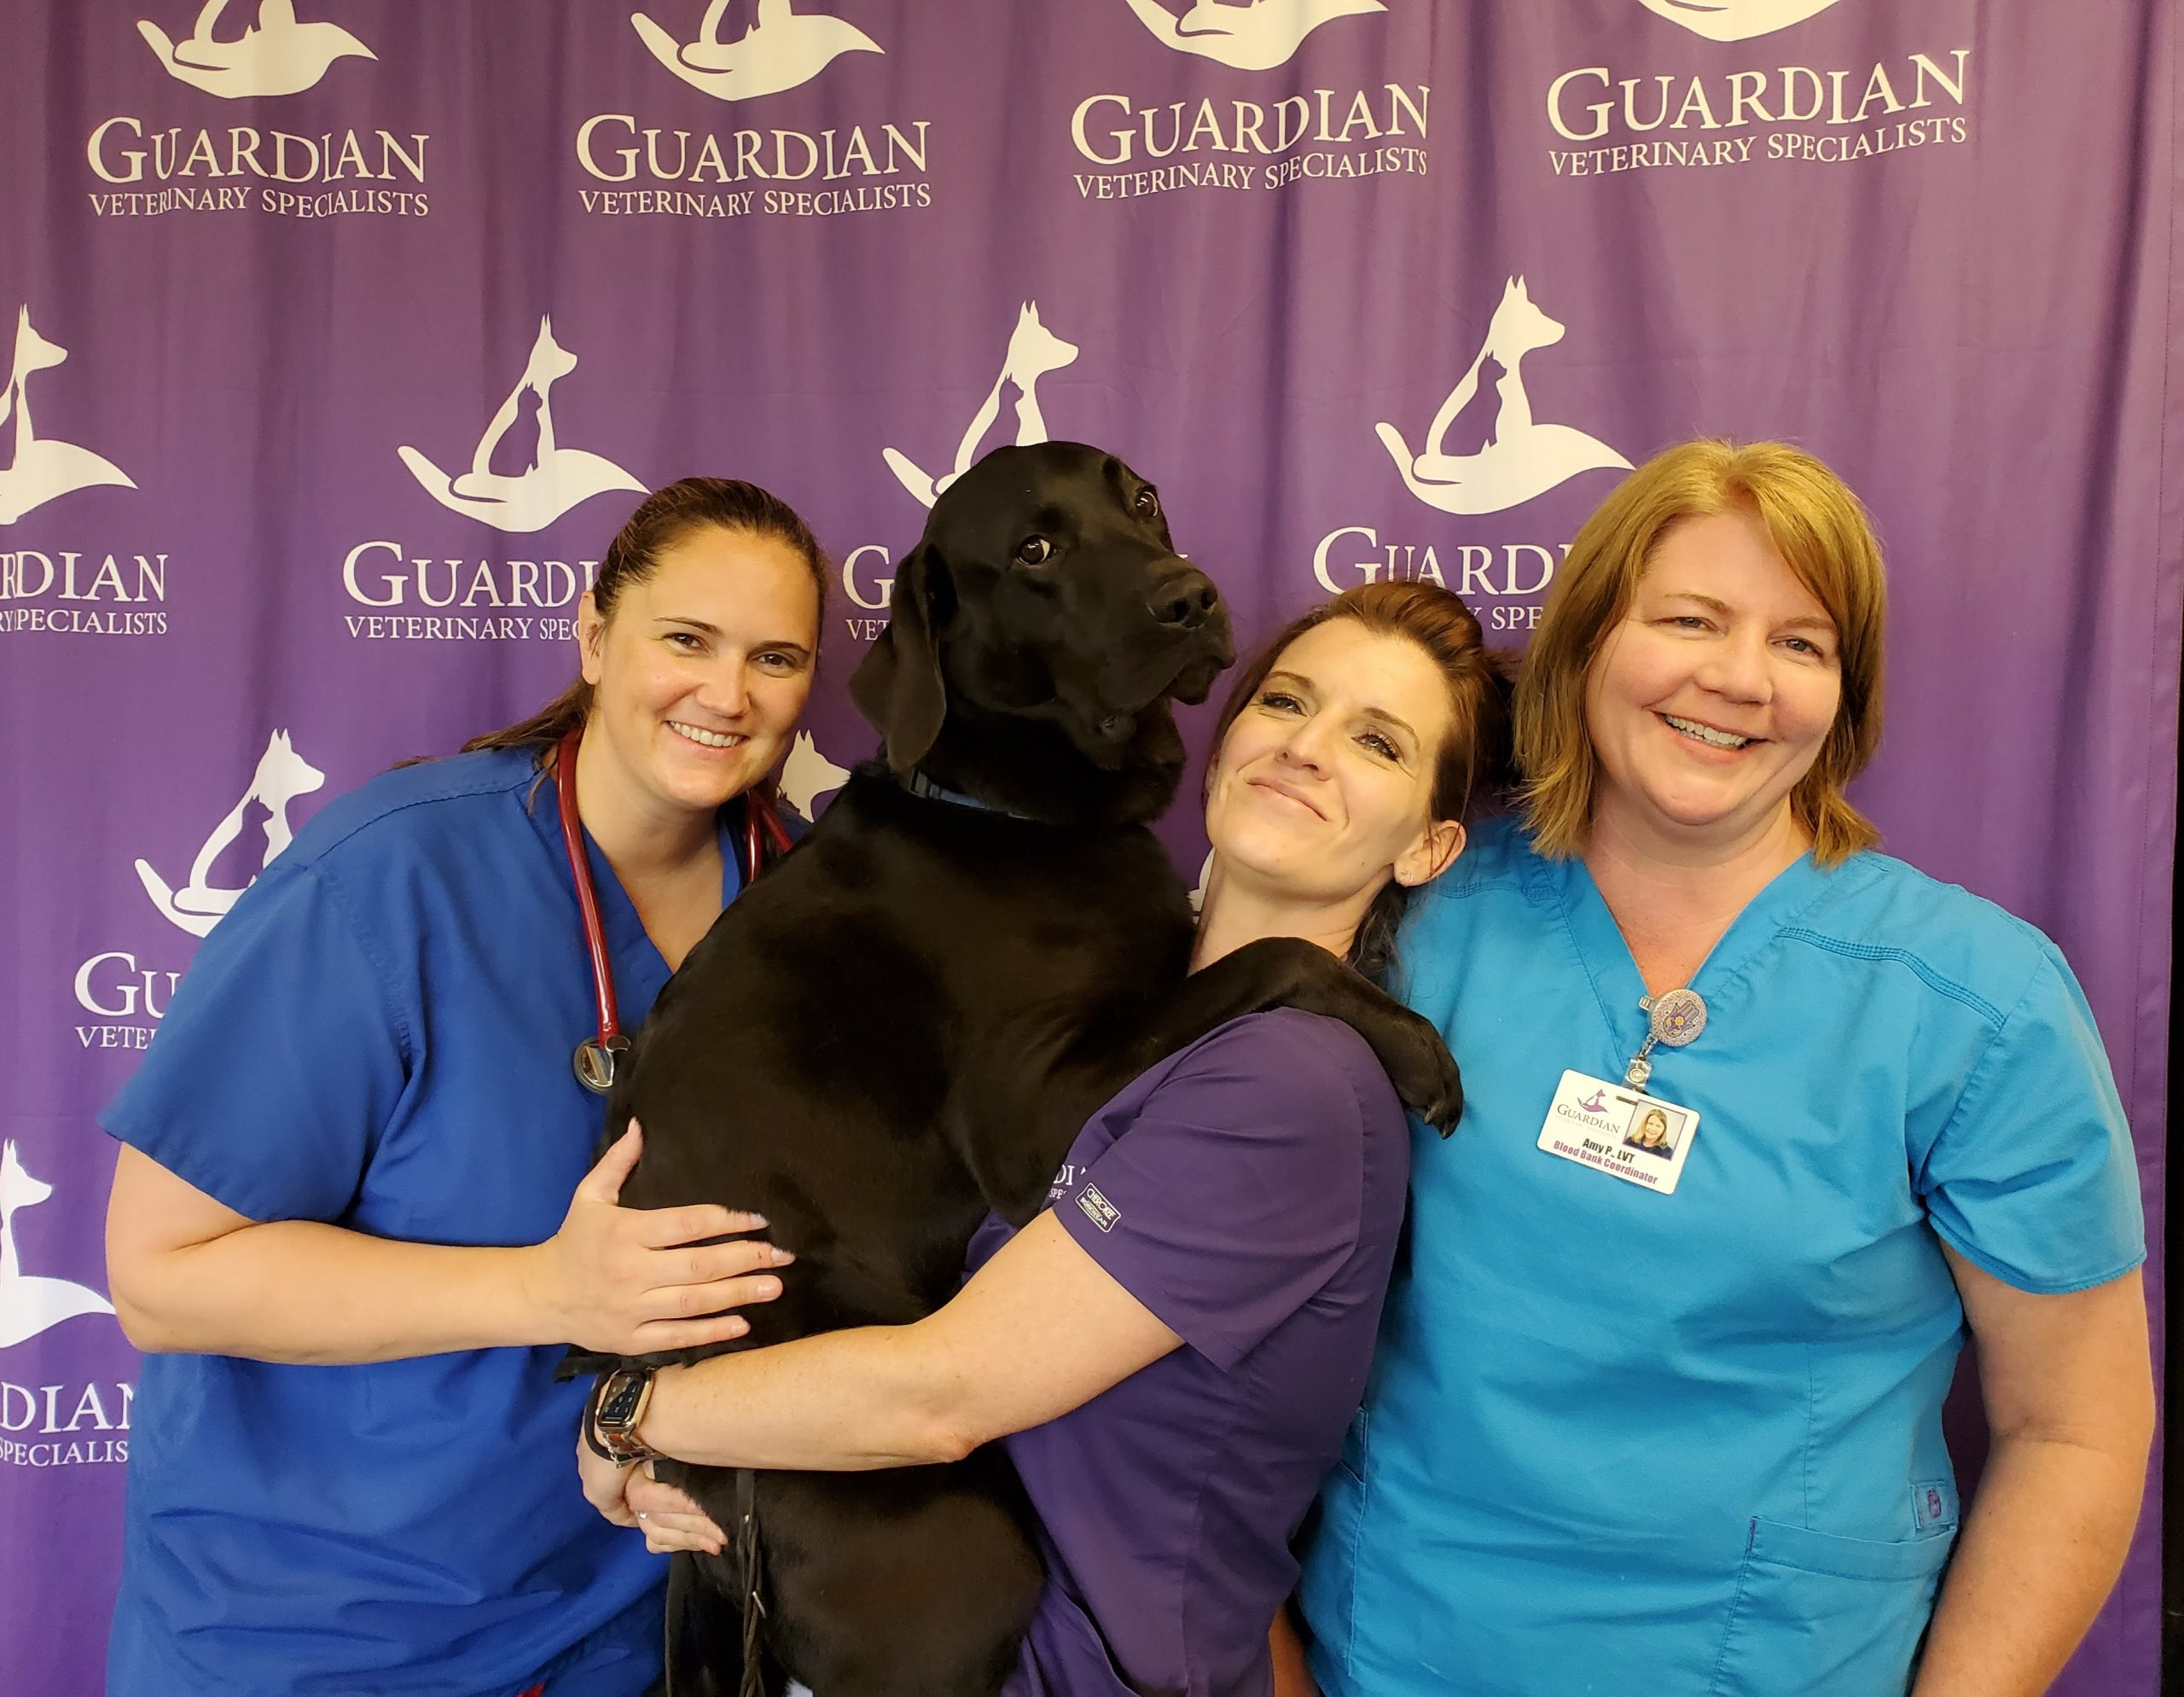 three women veterinary technicians wearing scrubs standing in front of a purple backdrop with Guardian logo, one woman holding large black dog